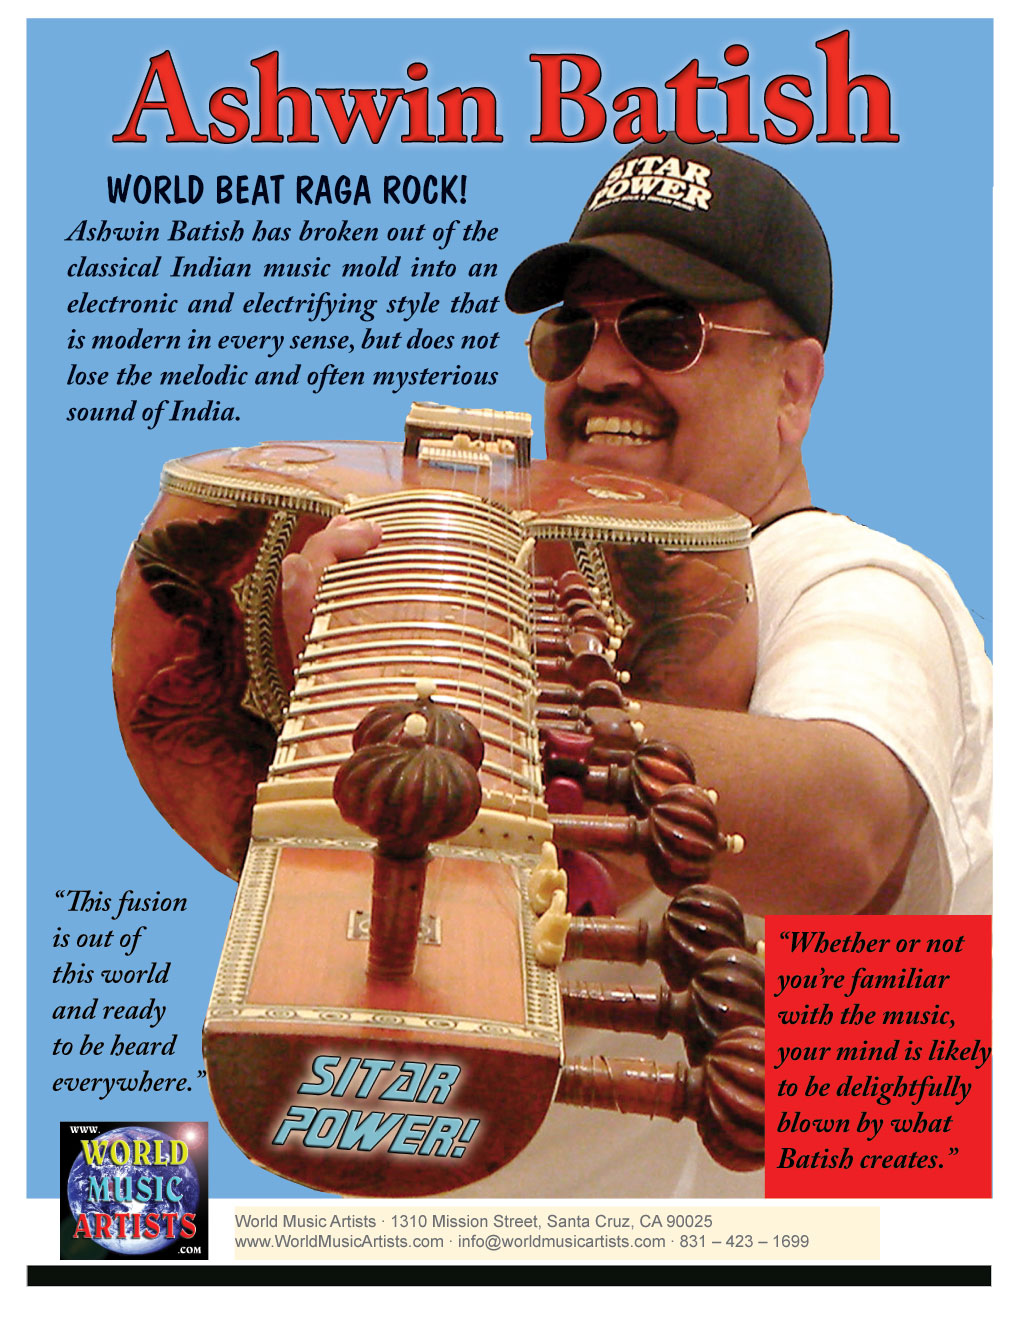 World Beat Raga Rock! Sitar Power Man Ashwin Batish Artist One Sheet, Back  Page �2012 Ashwin Batish, Batish Records (831) 423-1699